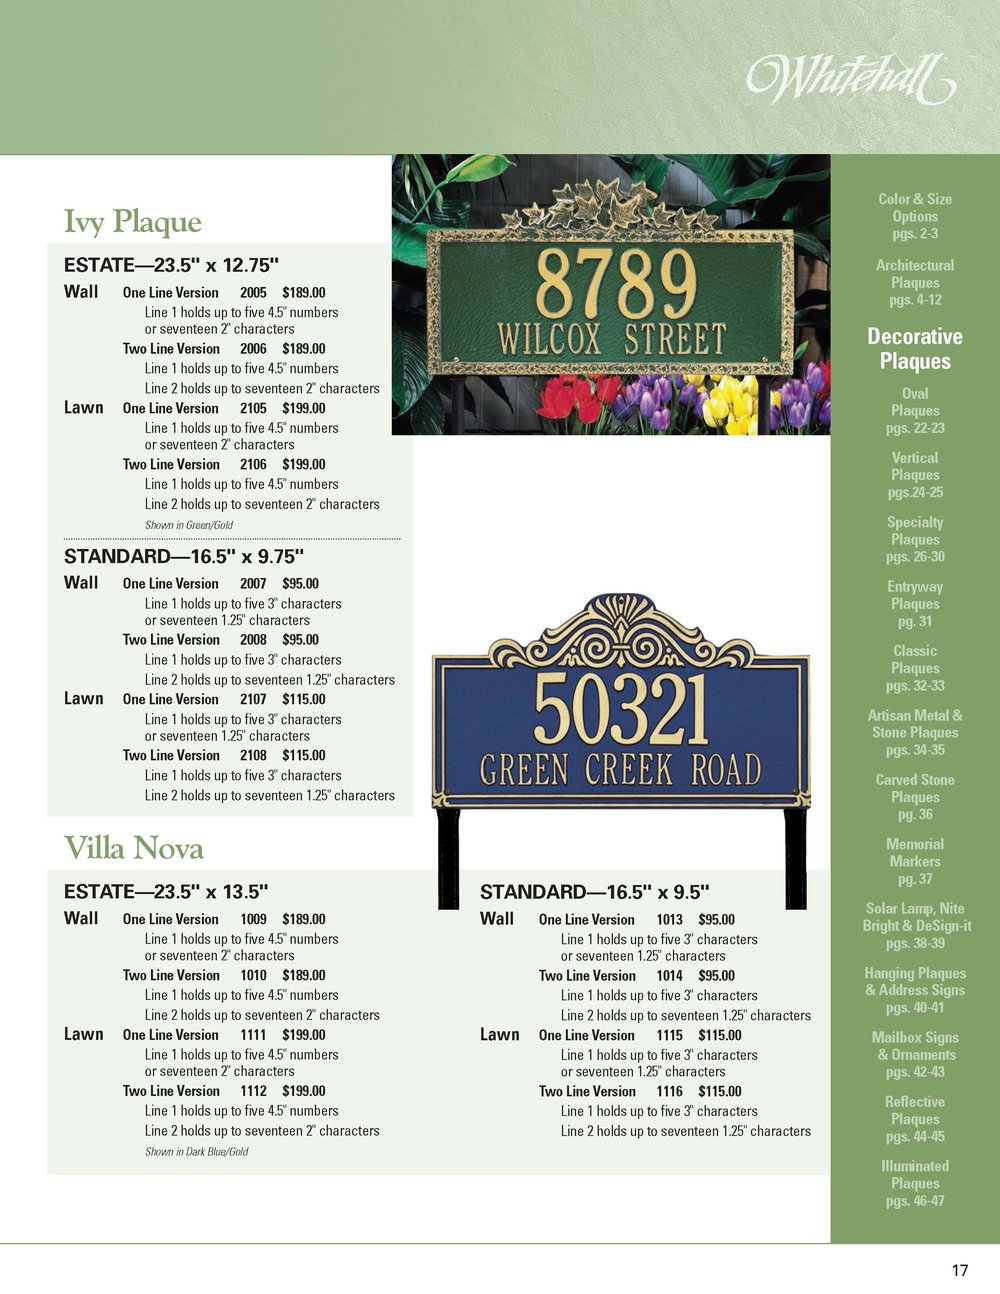 whitehall_catalog_pers_Page_17.jpg